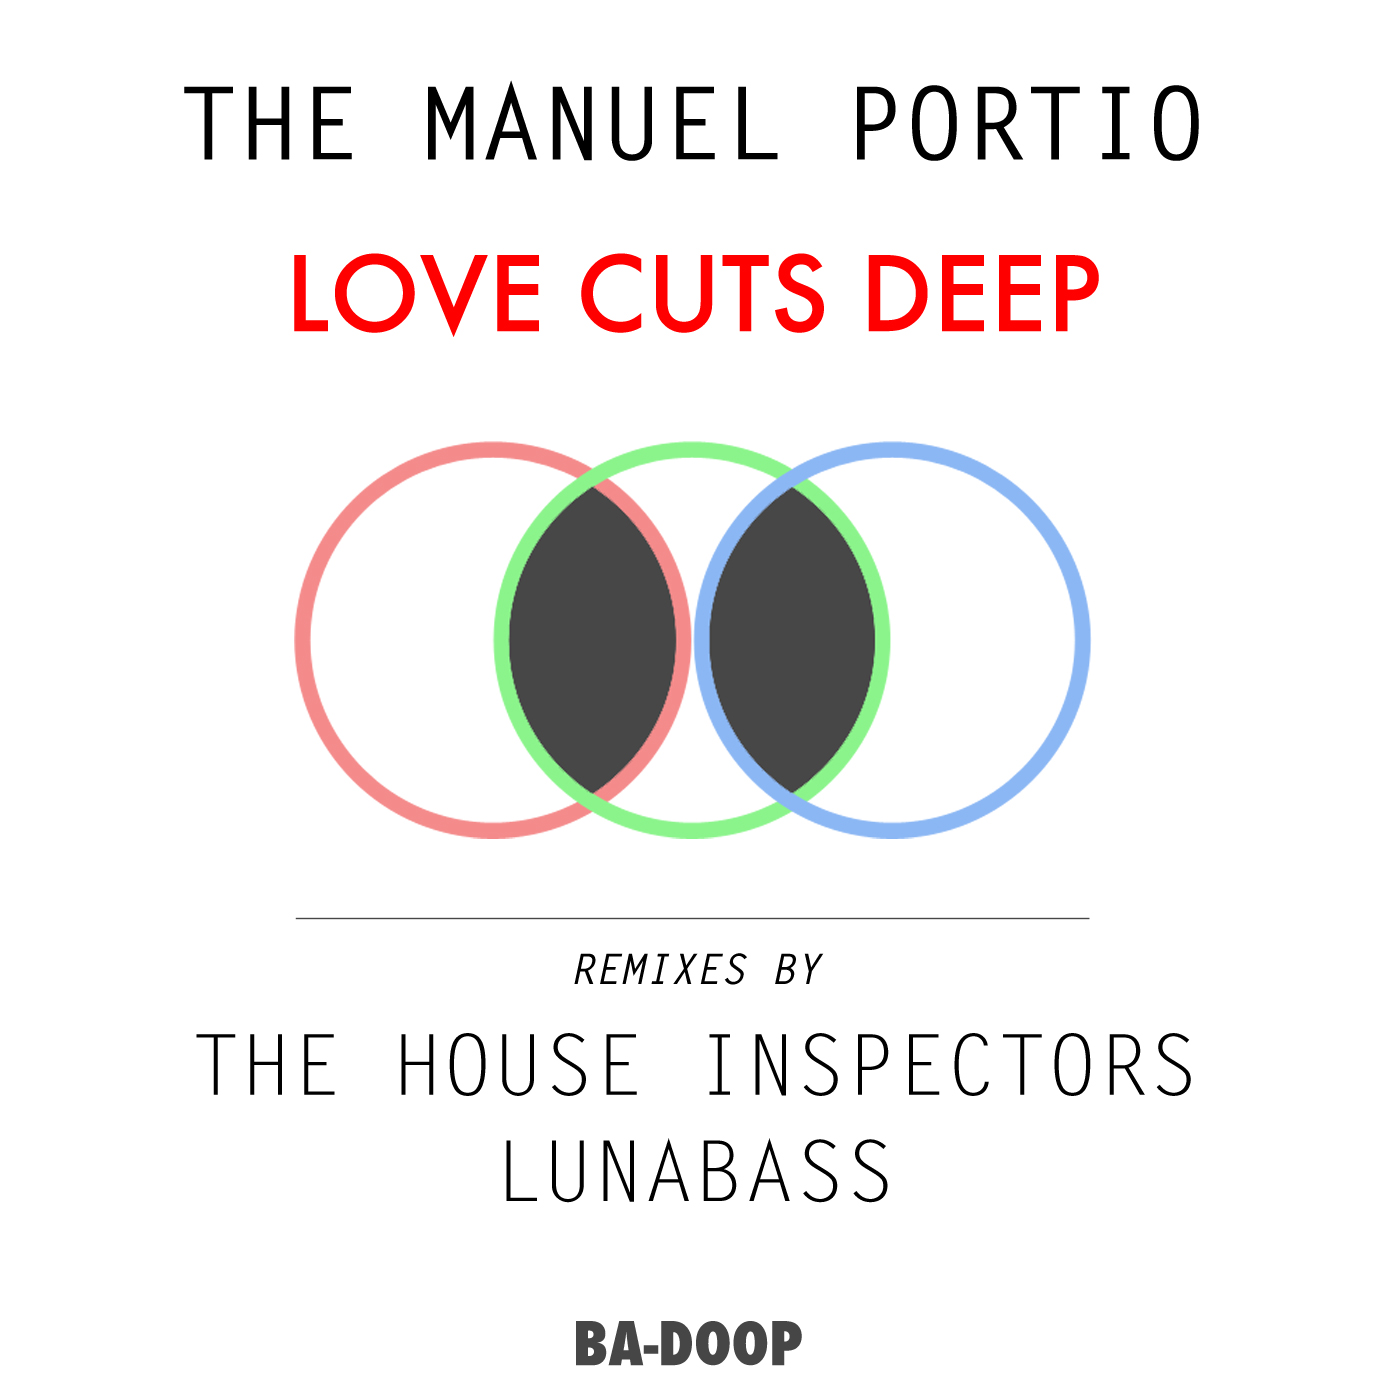 The-Manuel-Portio_Love-Cuts-Deep-EP_Ba-Doop_Artwork